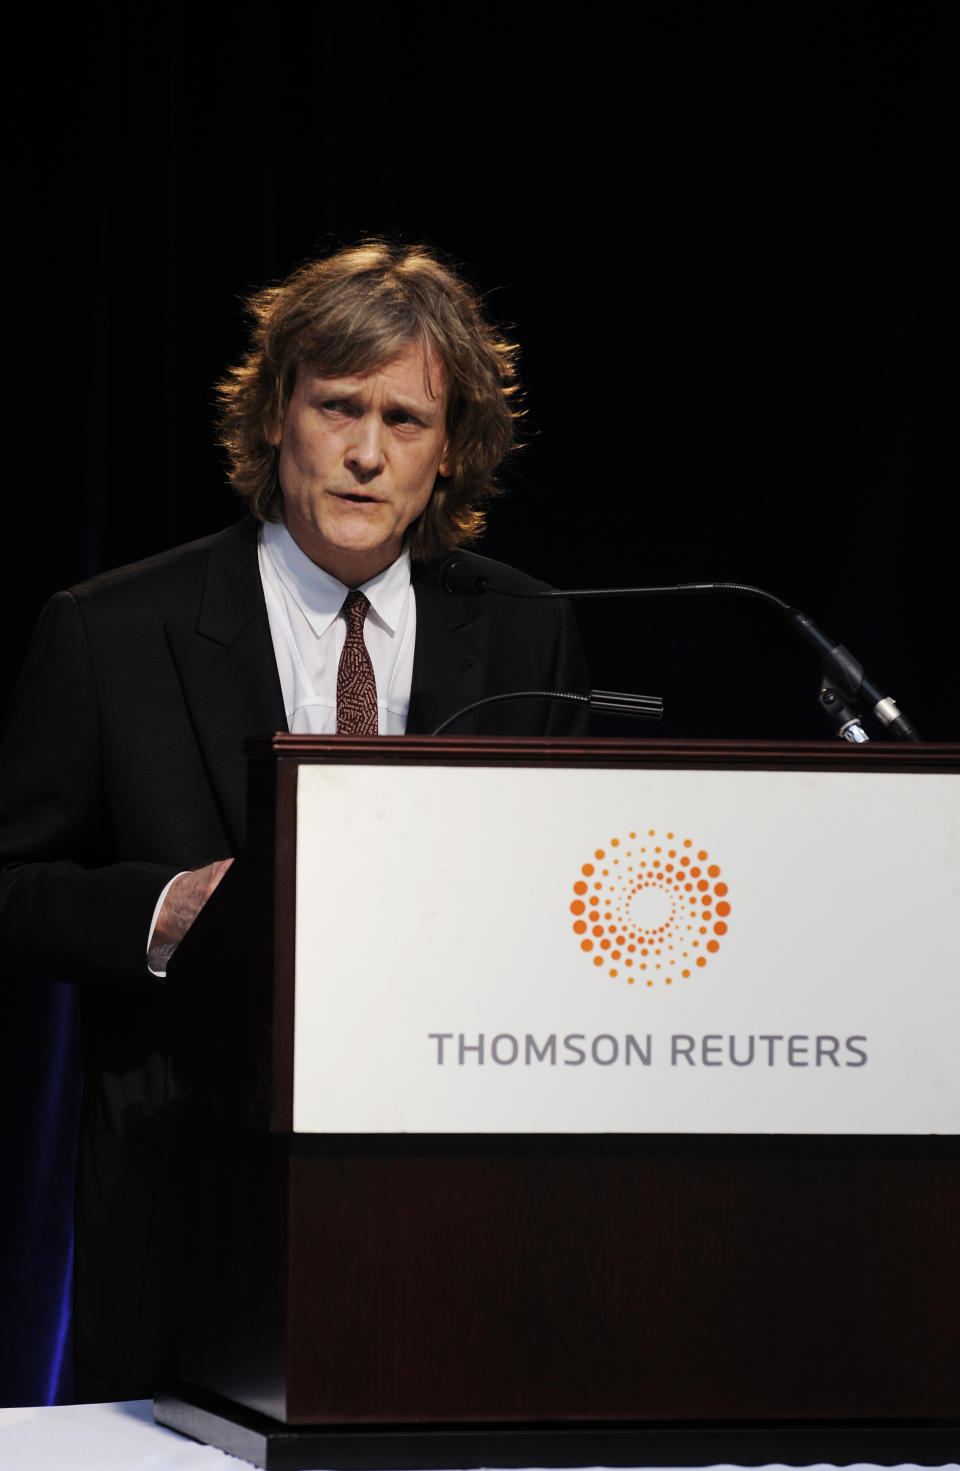 Thomson Reuters Chairman David Thomson speaks at the company's annual general meeting for shareholders